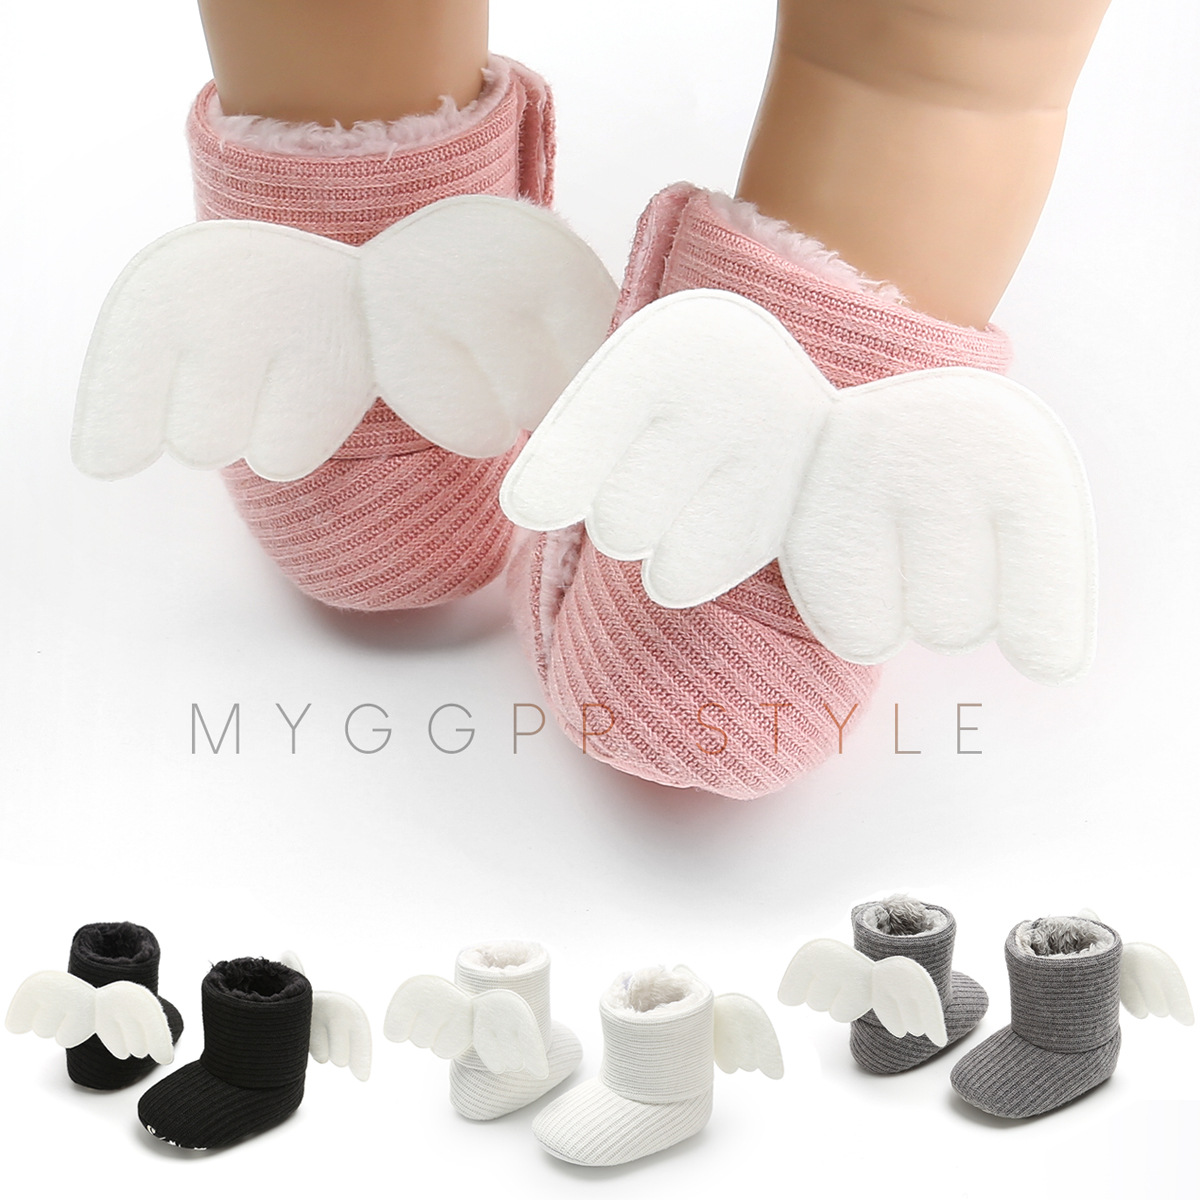 New Brand Baby Girls First Walkers Baby Winter Shoe Fashion Angel Wings Newborn Bebe Snow Boots Baby Moccasins